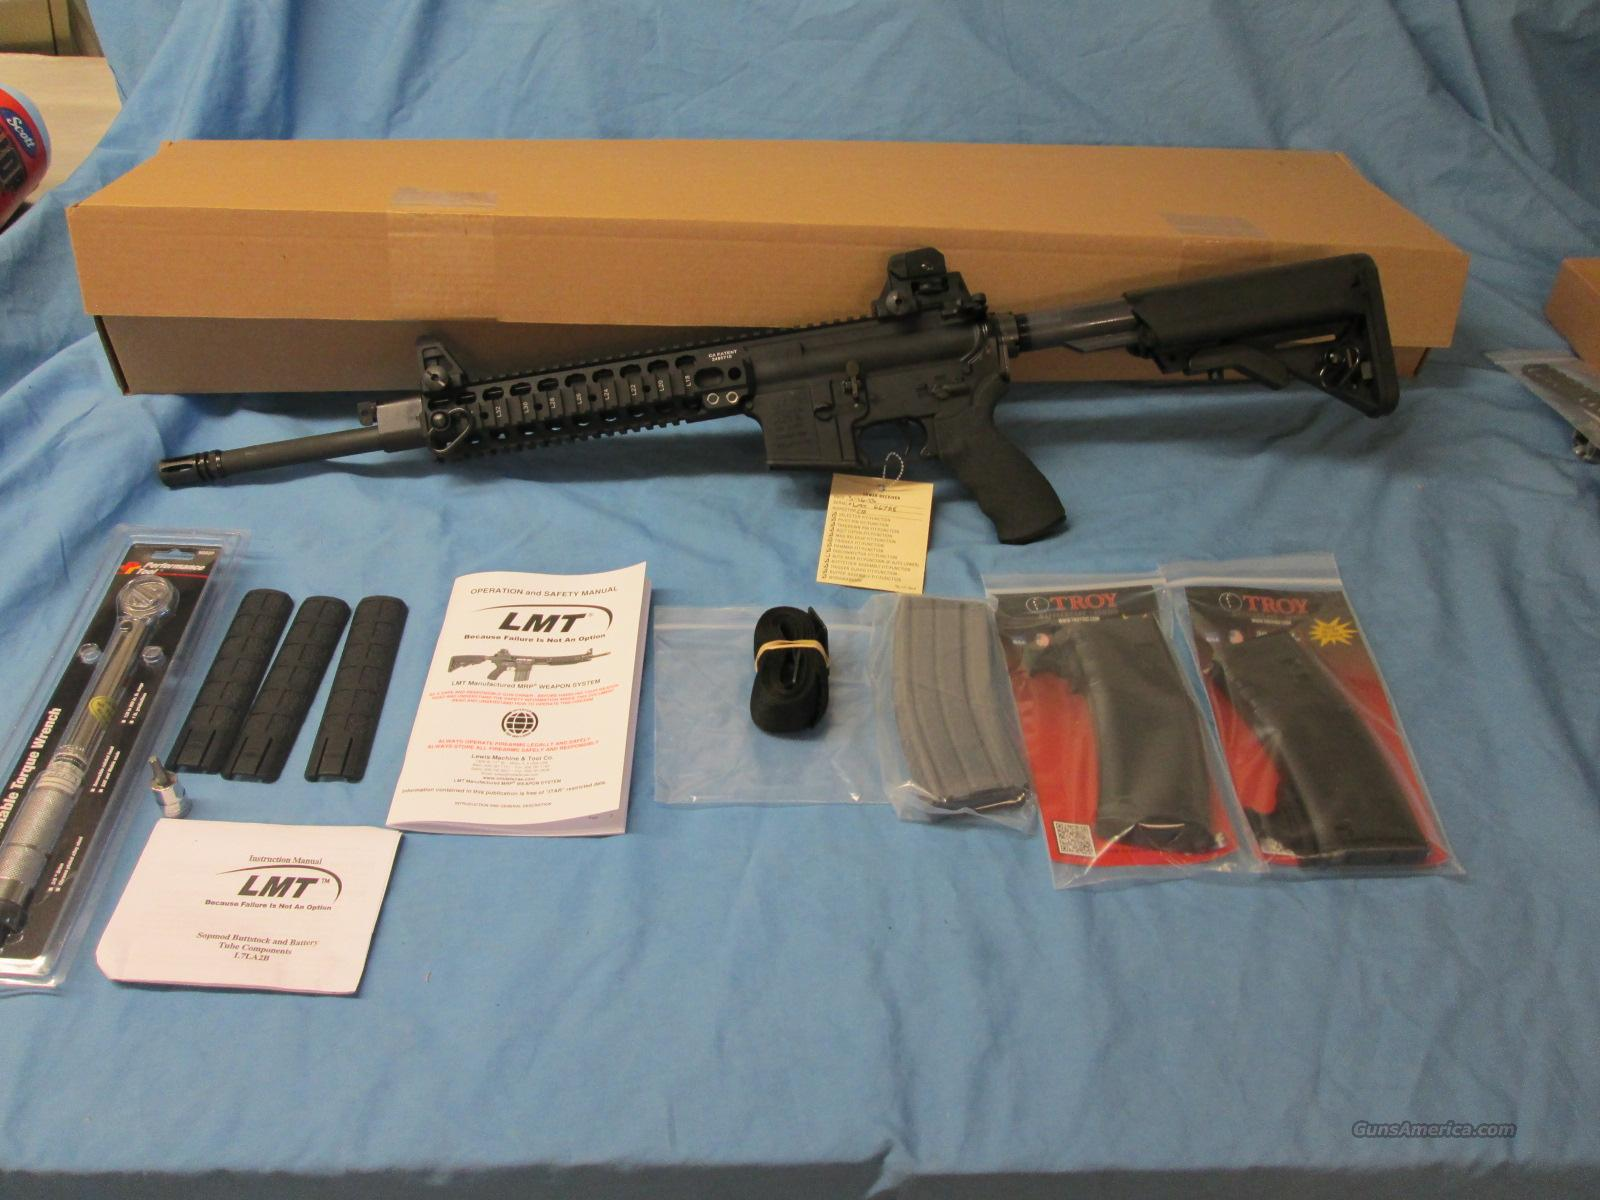 LMT CQB PS 16 AR-15 Lewis Machine and Tool  Guns > Rifles > AR-15 Rifles - Small Manufacturers > Complete Rifle